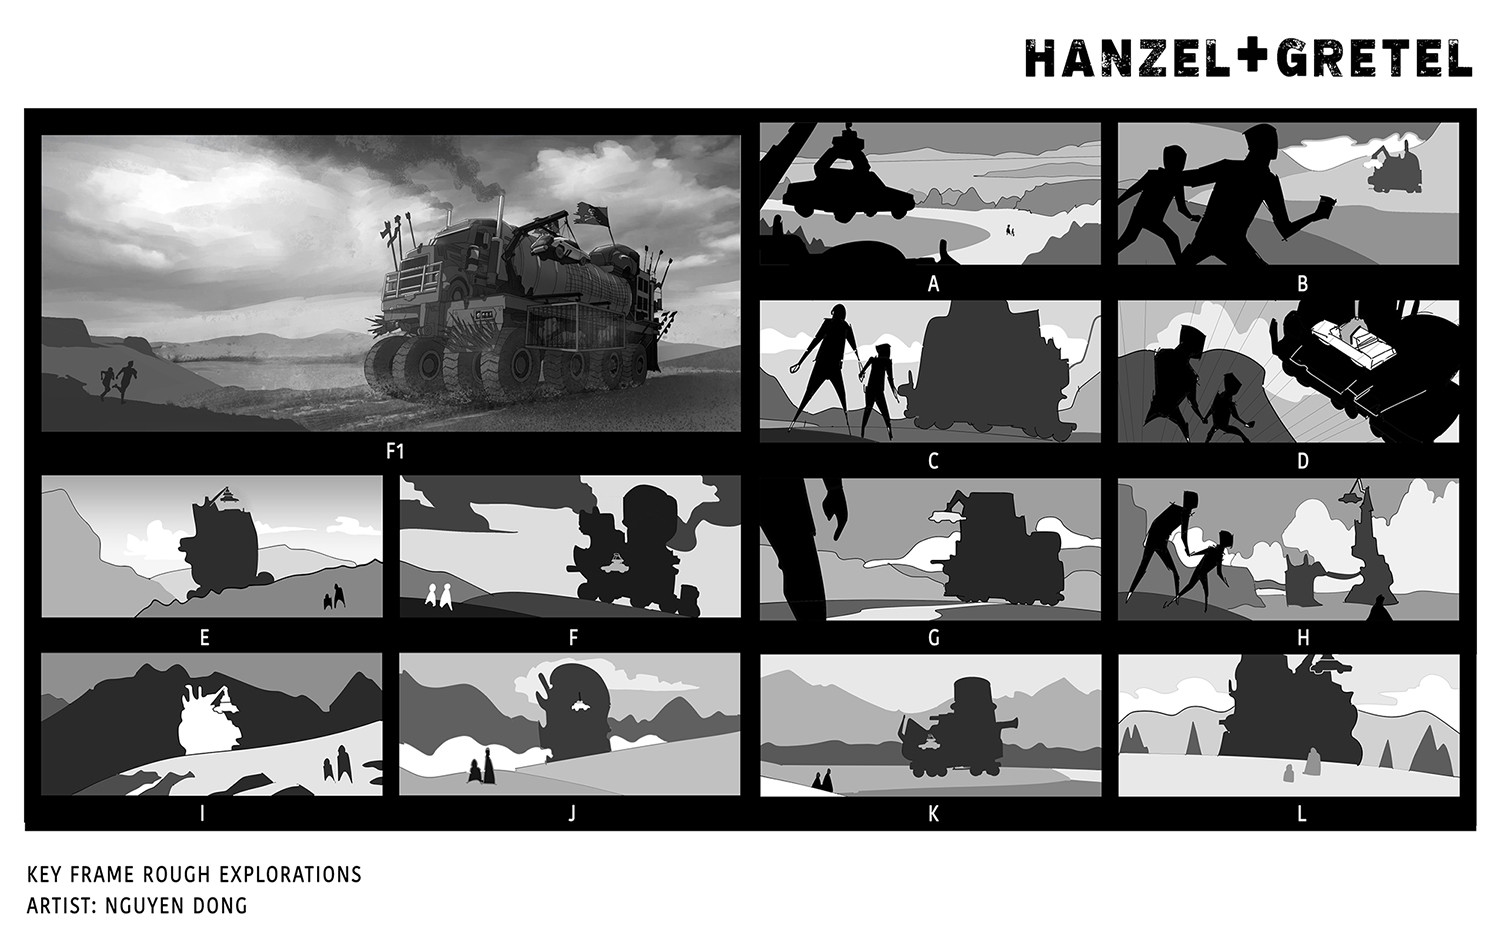 Hanz and Gretel discover the Wasteland witch's vehicle.  Rough explorations.